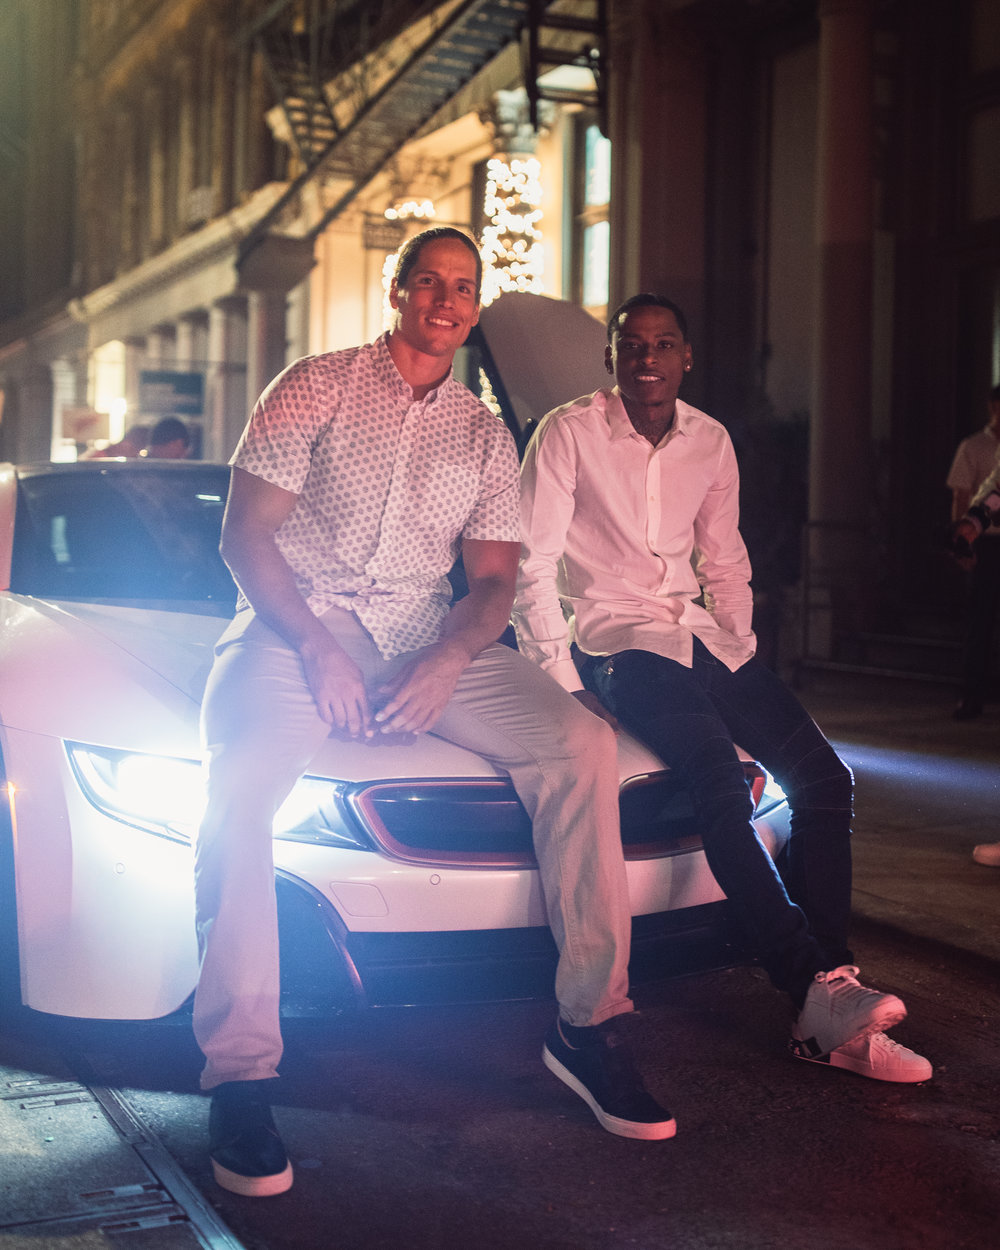 Remy Boy Monty1738 and Thrilla on the hood of his BMW i8